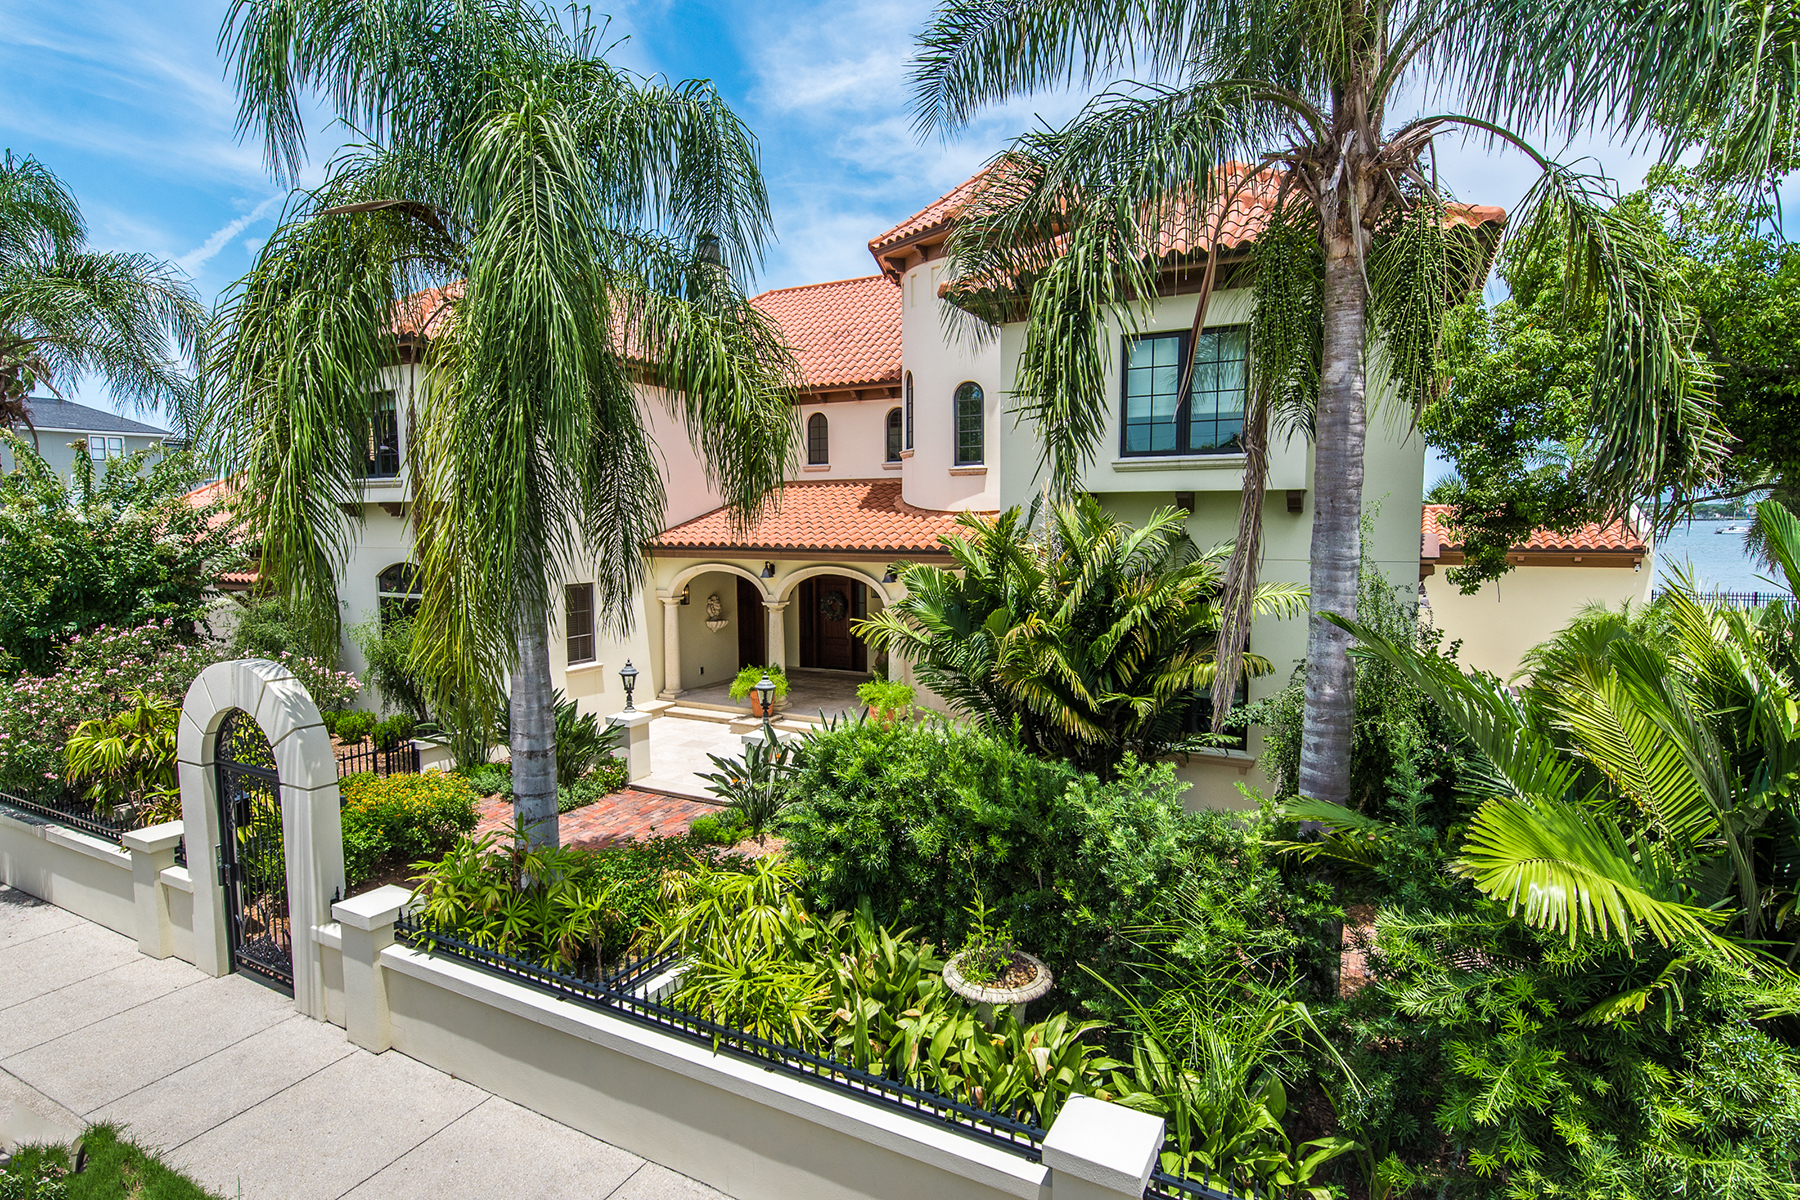 Single Family Homes for Sale at Mansion on Marine 125 Marine Street St. Augustine, Florida 32084 United States